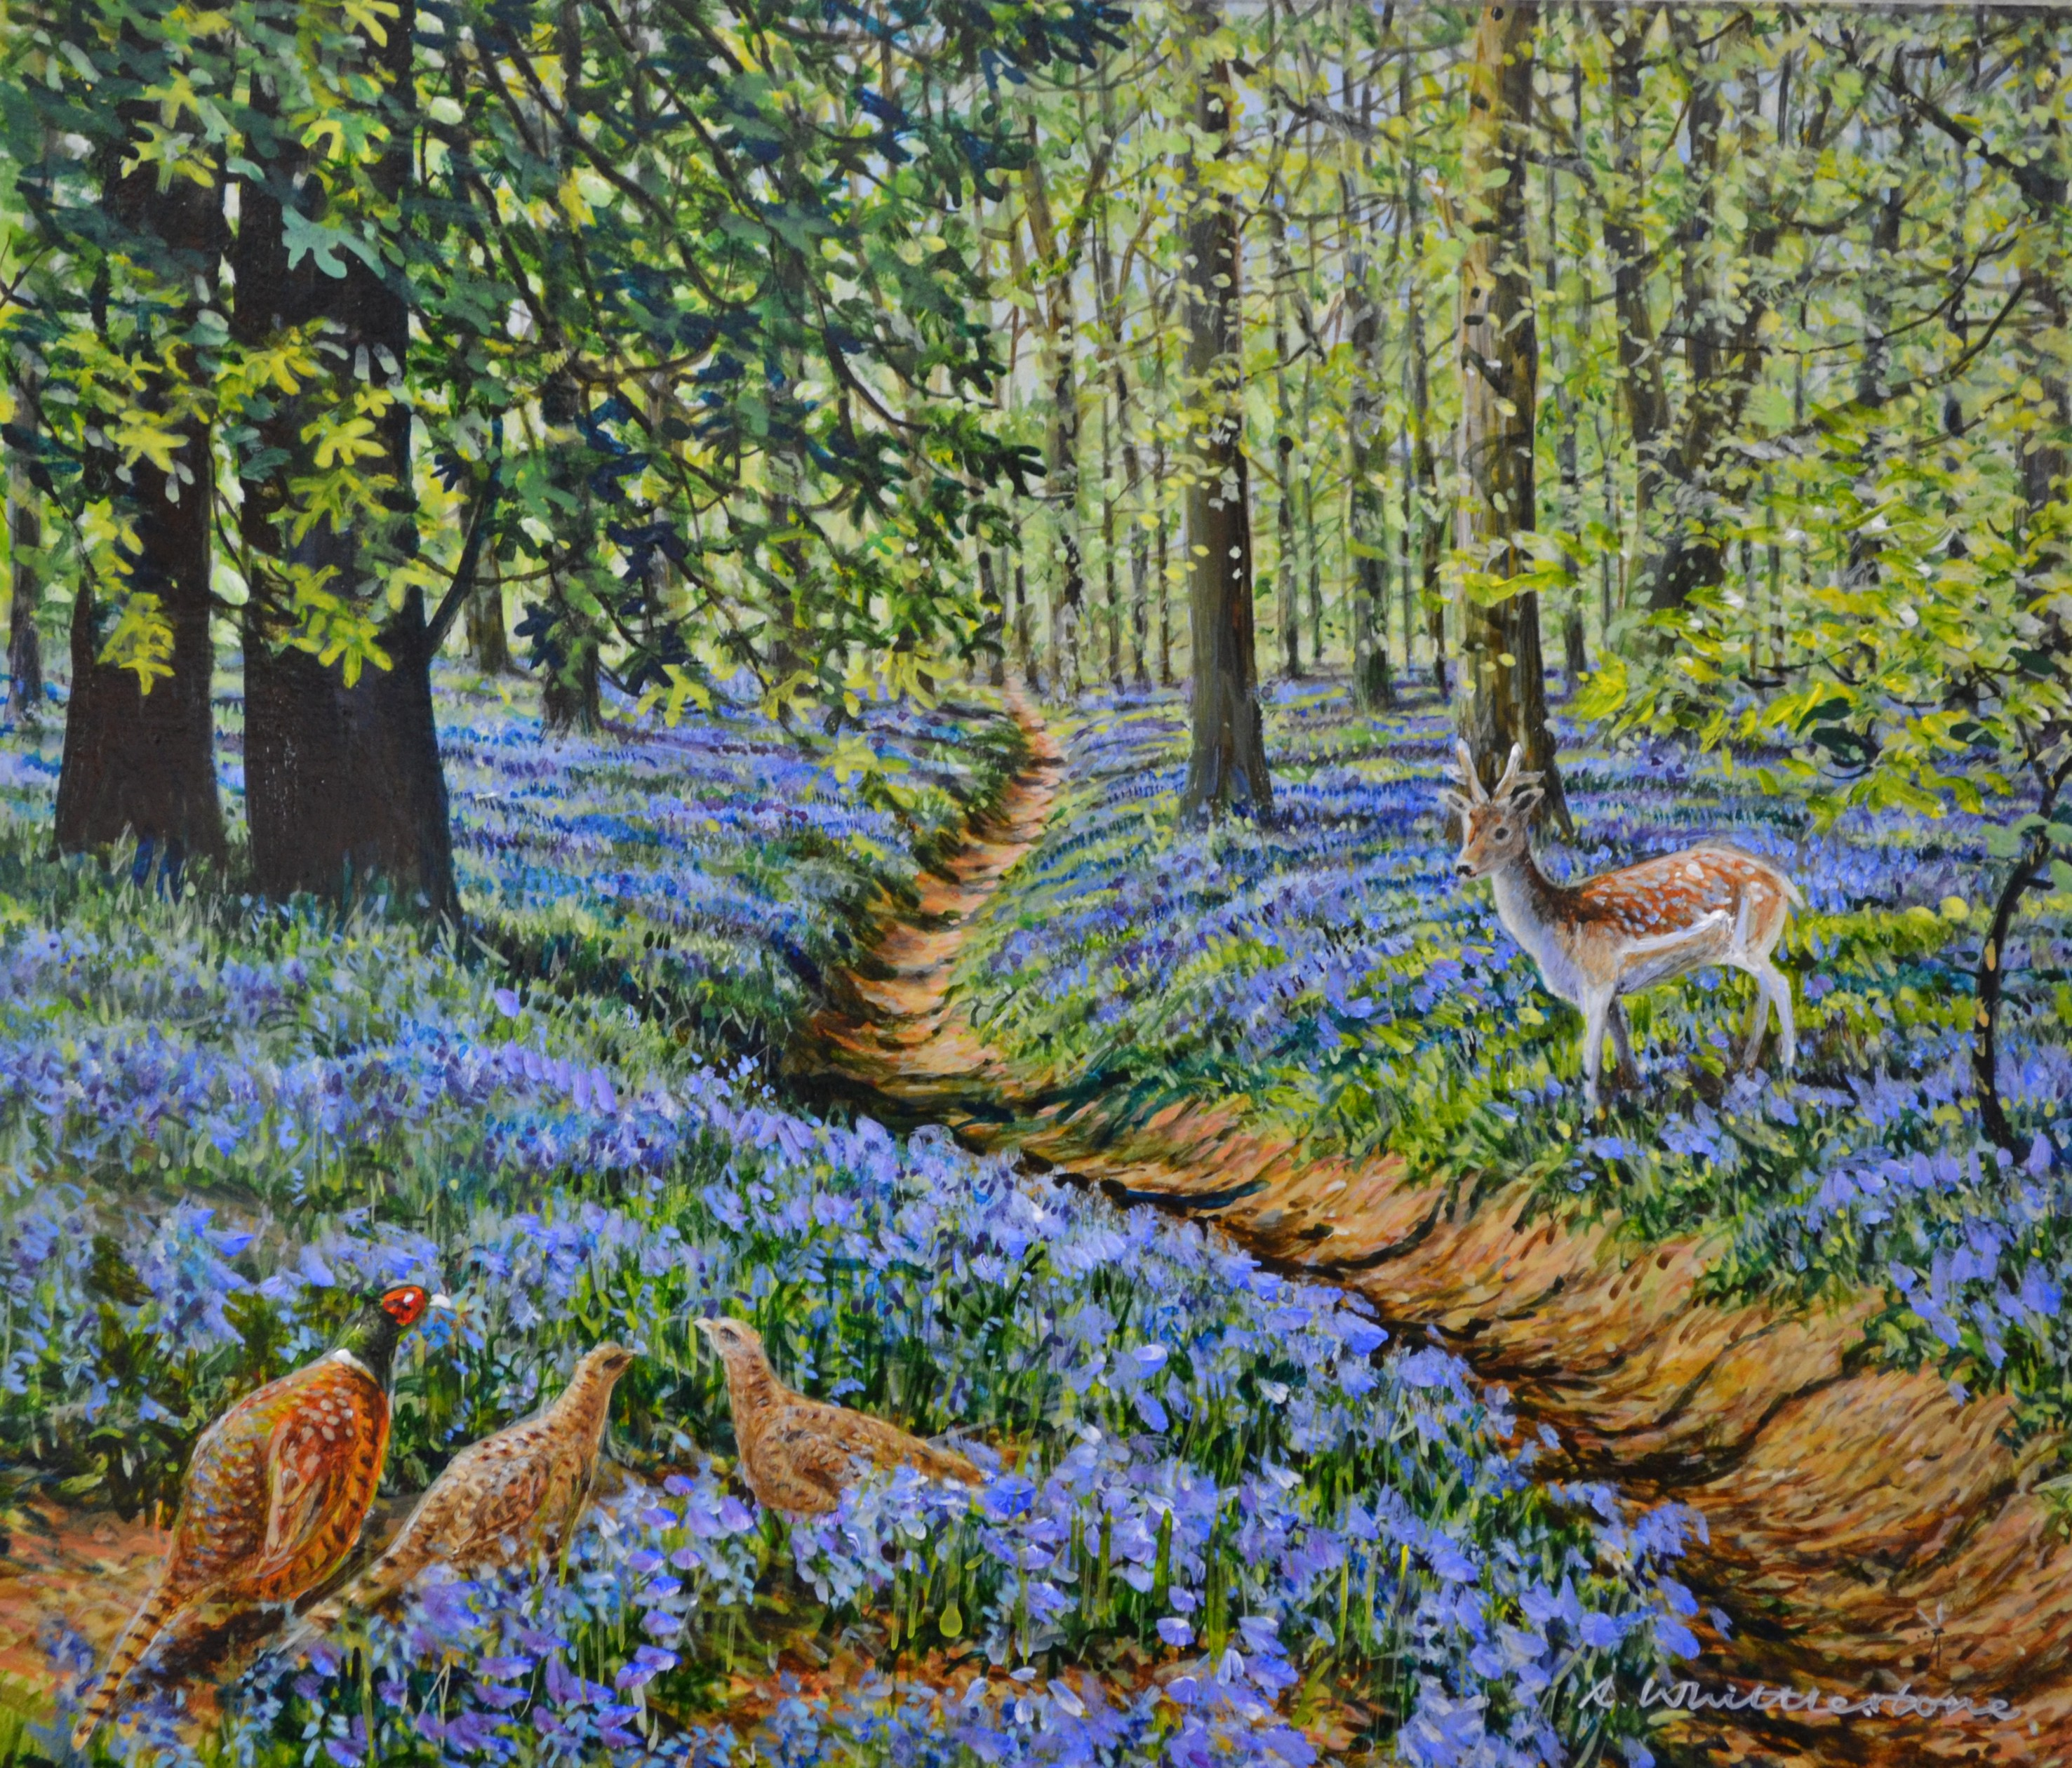 In the Bluebell Wood